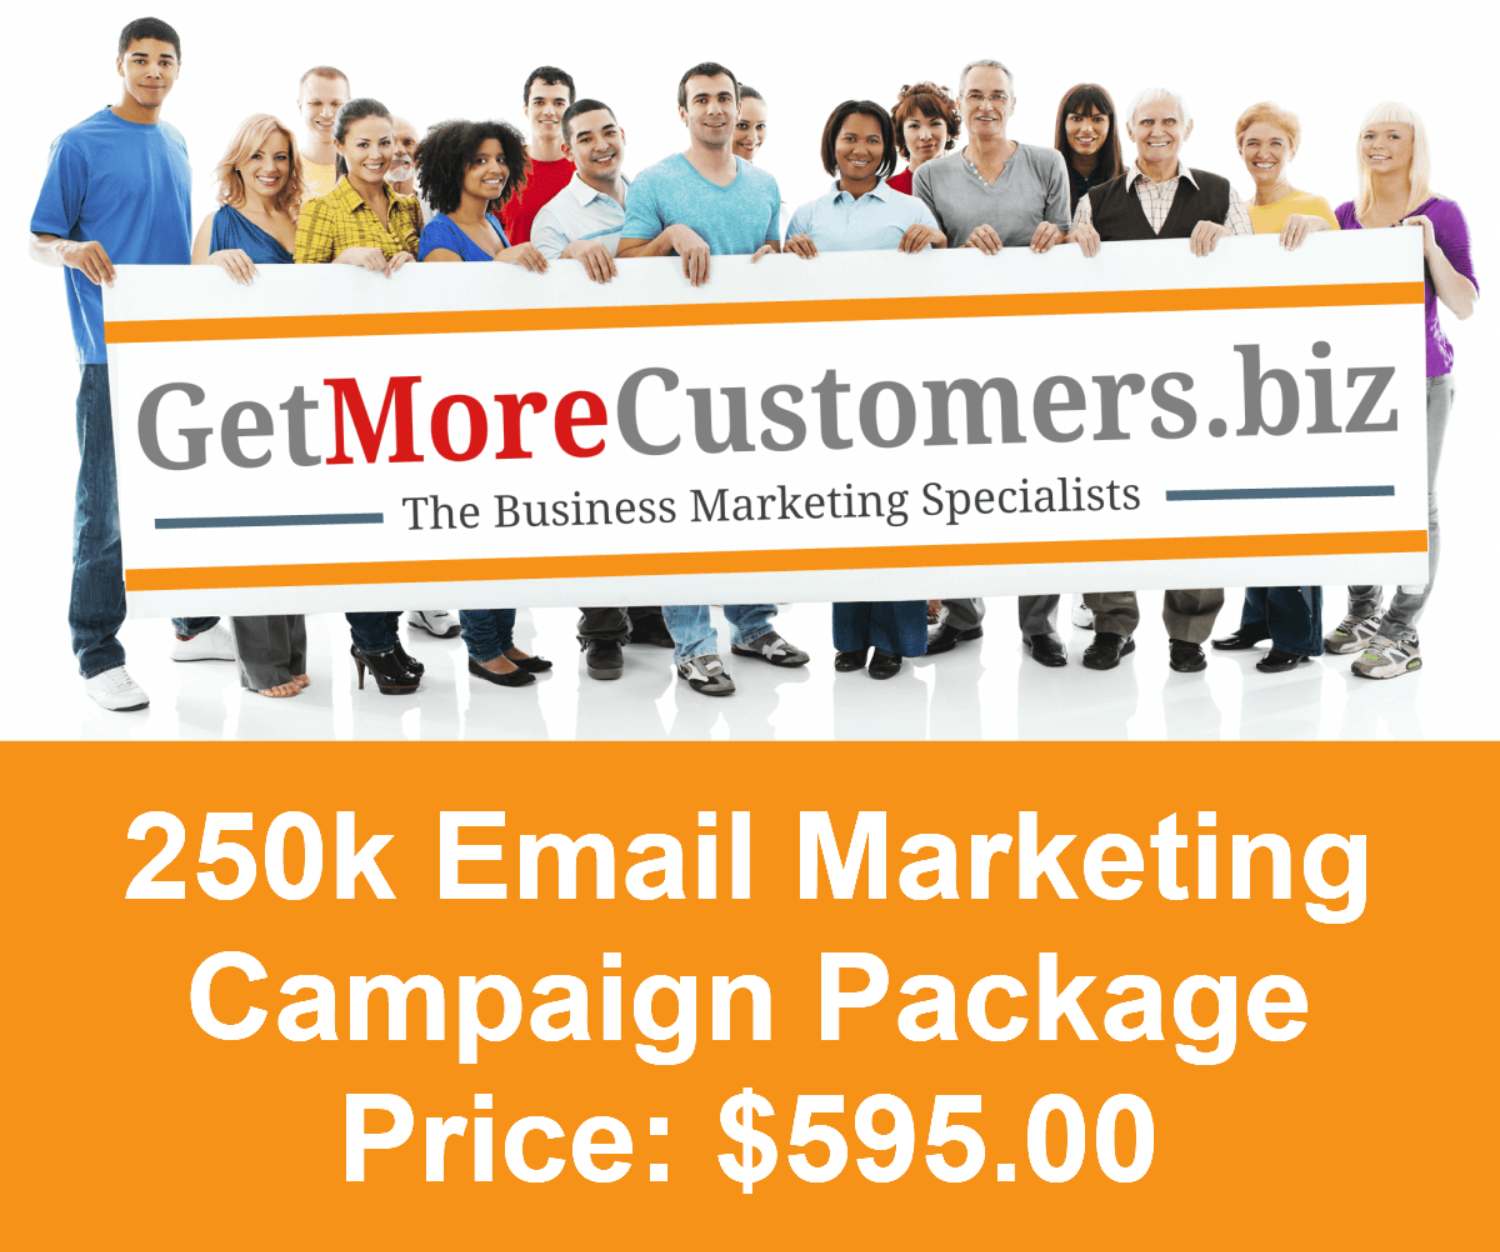 250k Email Campaign - $595.00